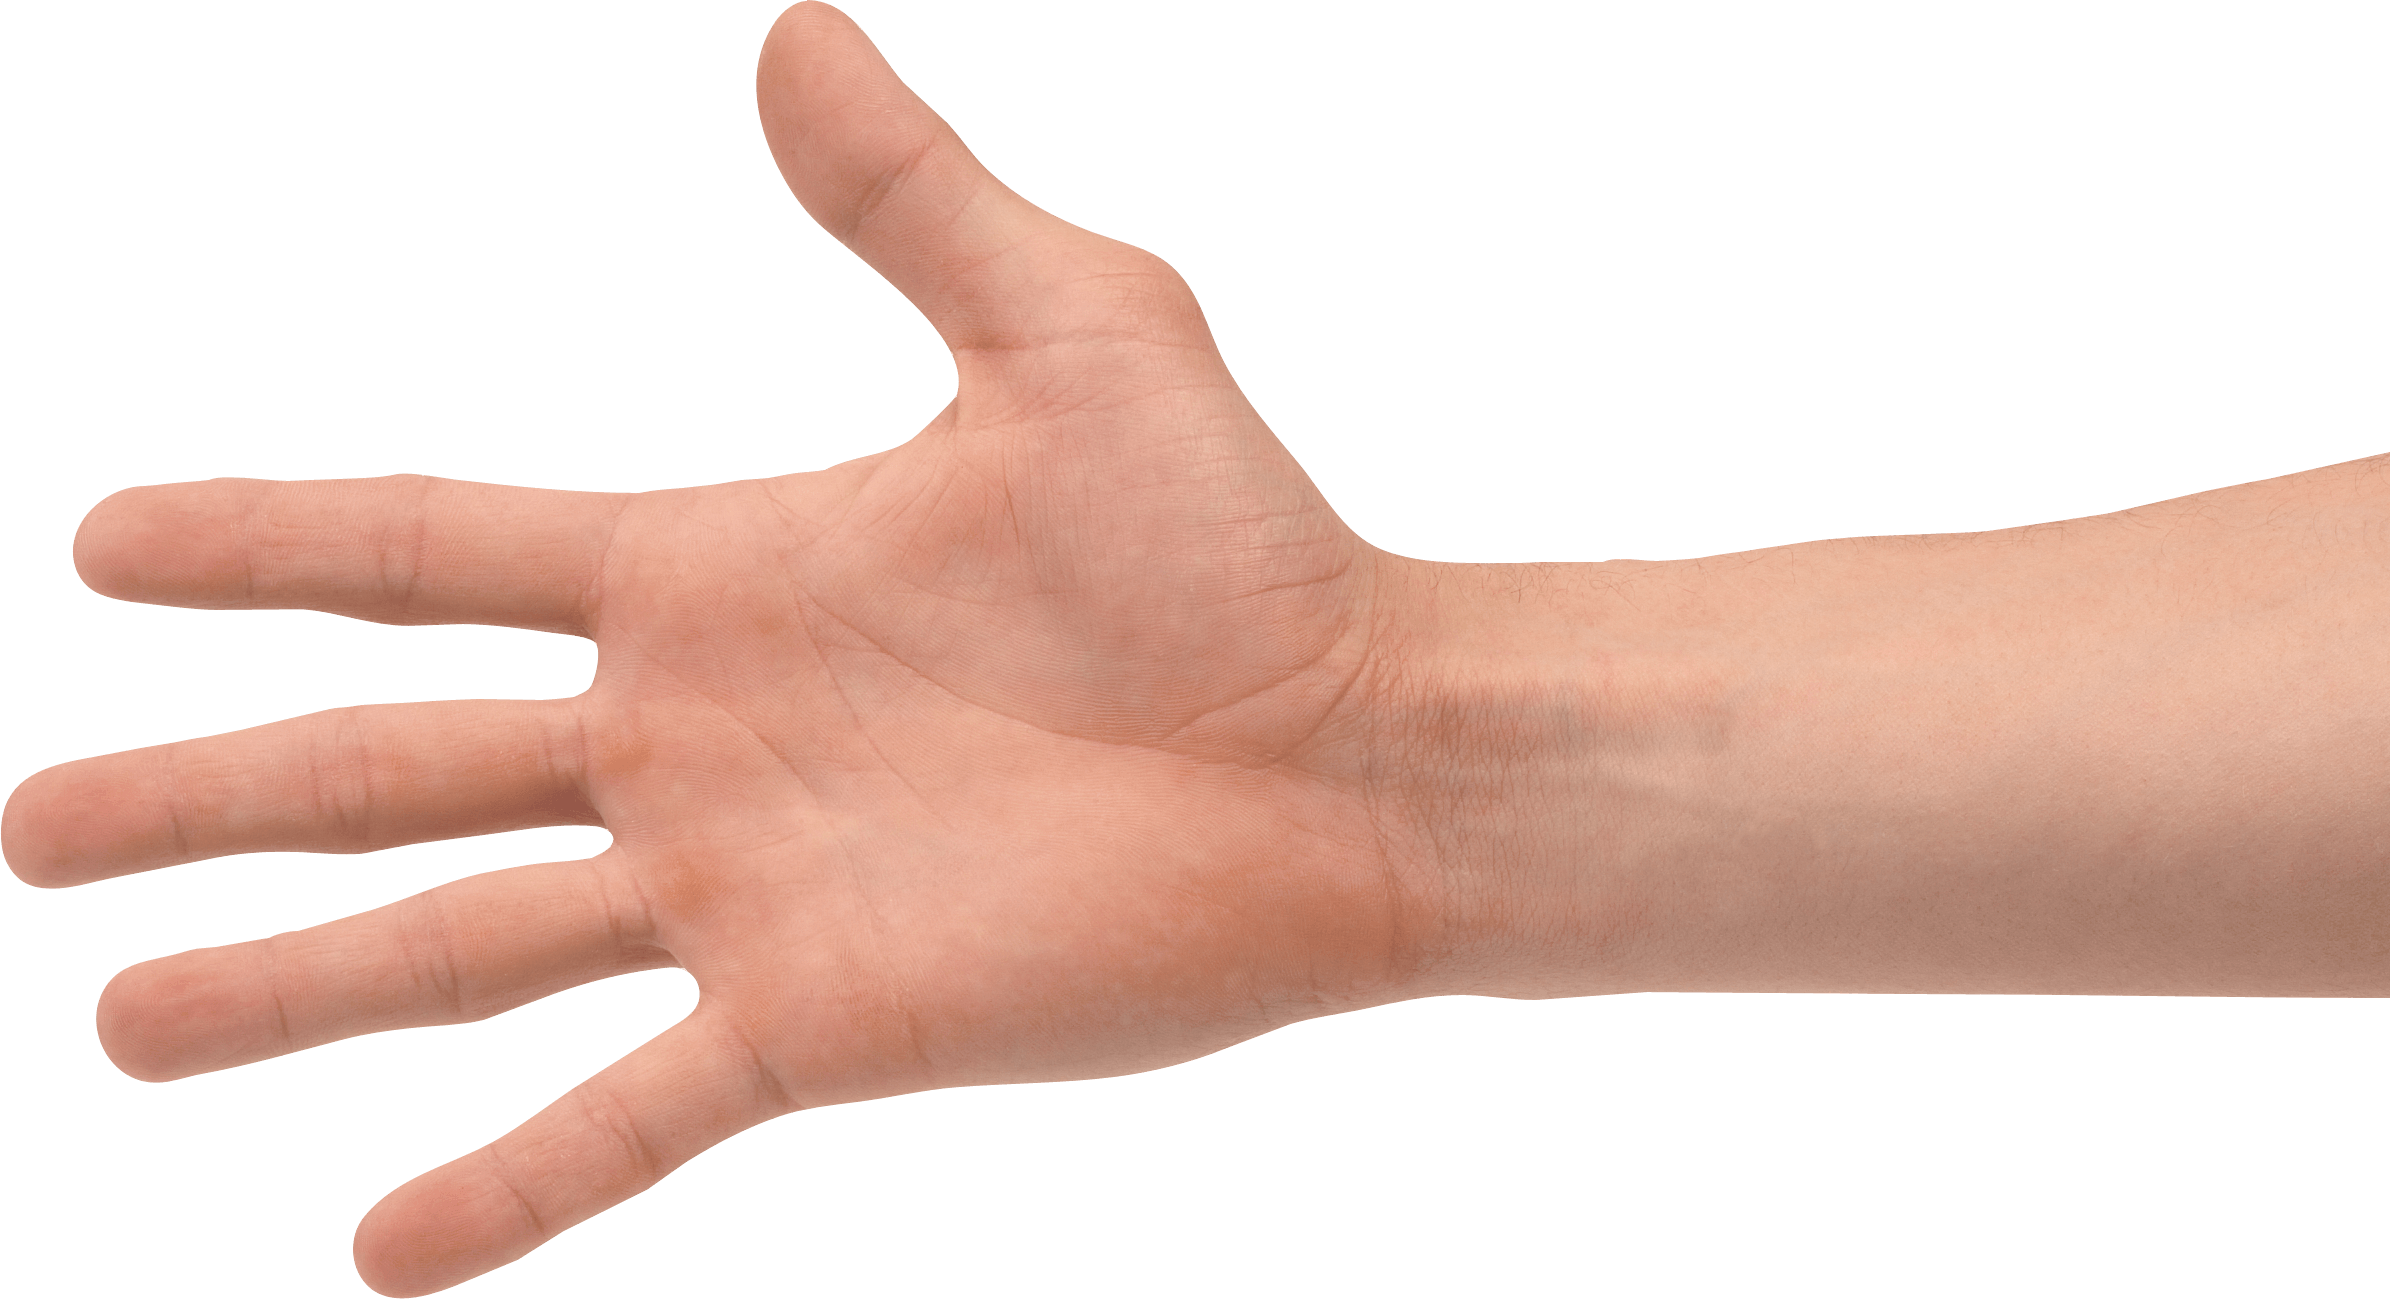 Hand png. Hands transparent images pluspng